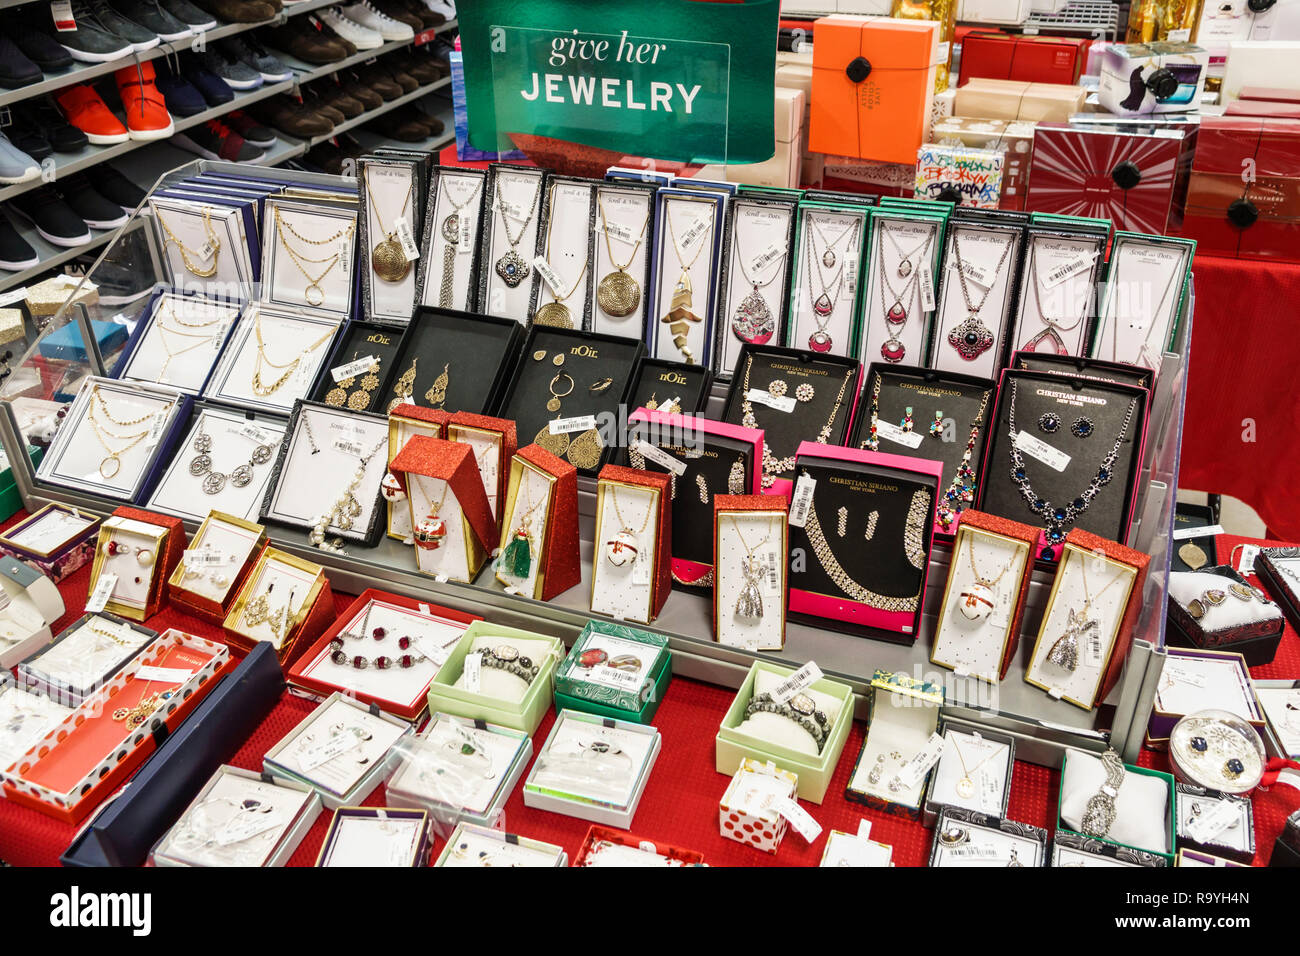 27+ Jewelry at marshalls department store ideas in 2021